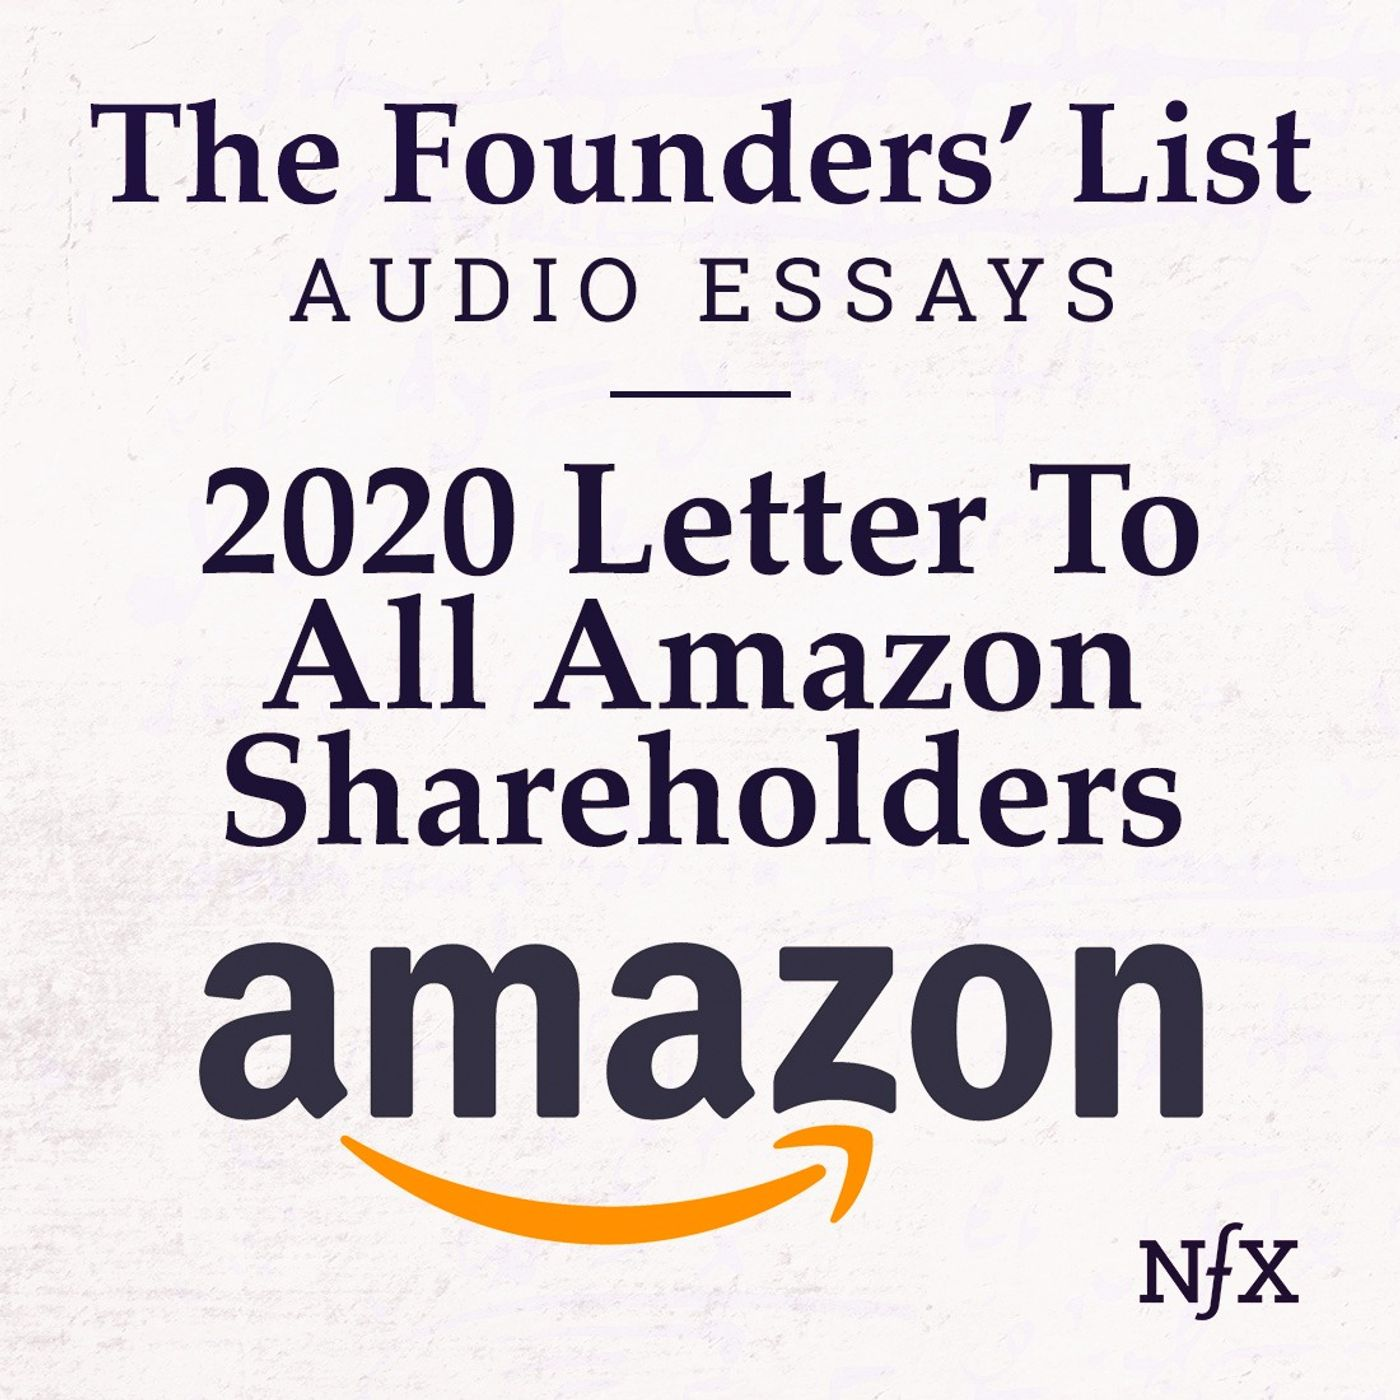 The Founders' List: 2020 Letter to Amazon Shareholders